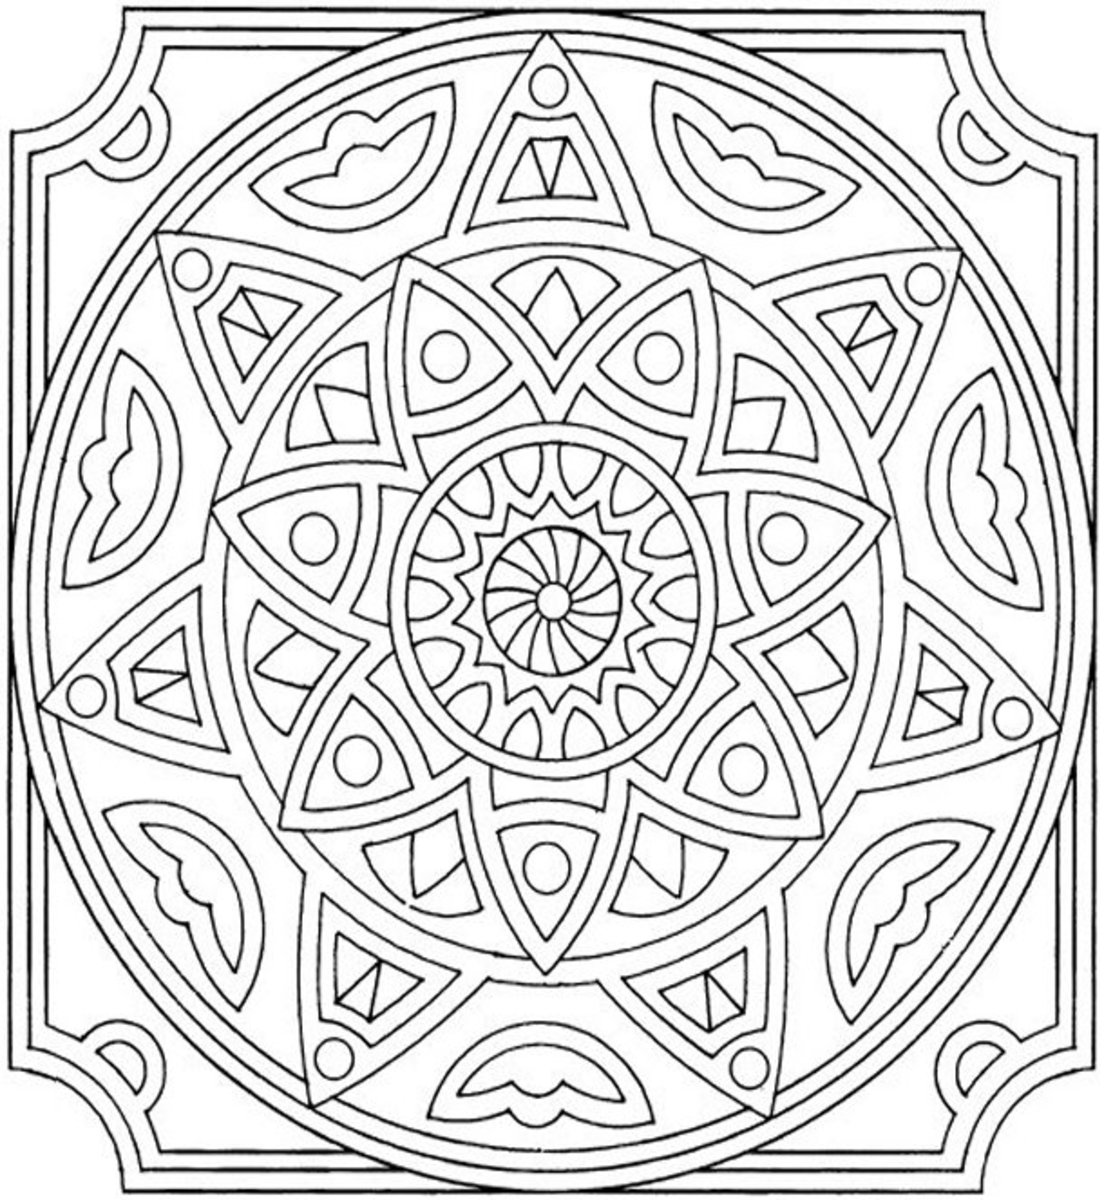 Free Coloring Pages Islam Islamic Pictures Patterns Images Mandala Caligraphy likewise 40 Mandalas A Imprimer Et A Colorier additionally Mosaic Valentine Coloring Pages in addition 354683 also 17170042303197849. on mosaics for kids free patterns